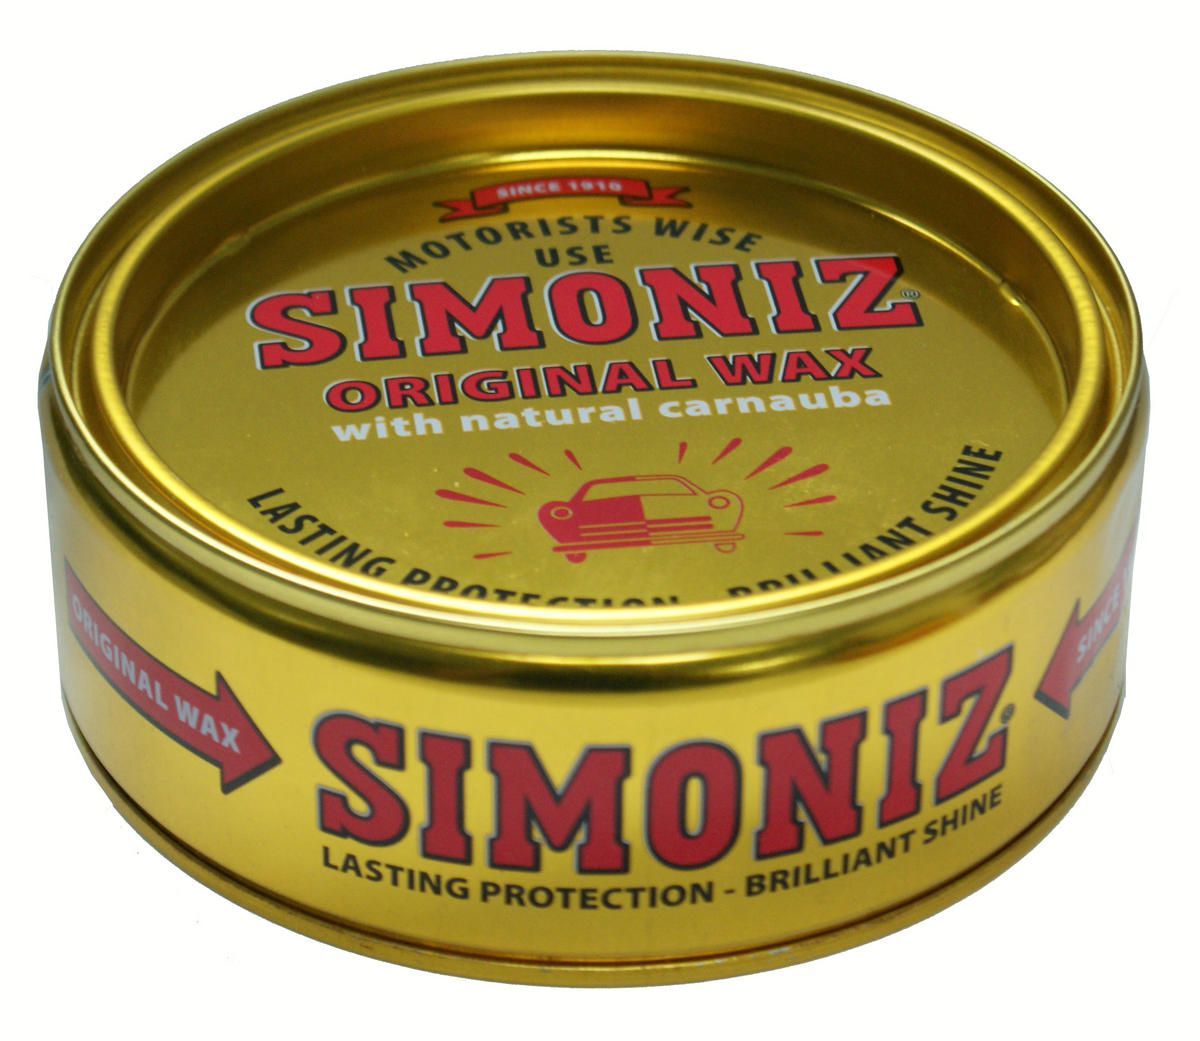 Simoniz SIM0010A Original Wax With Natural Carnauba 150G